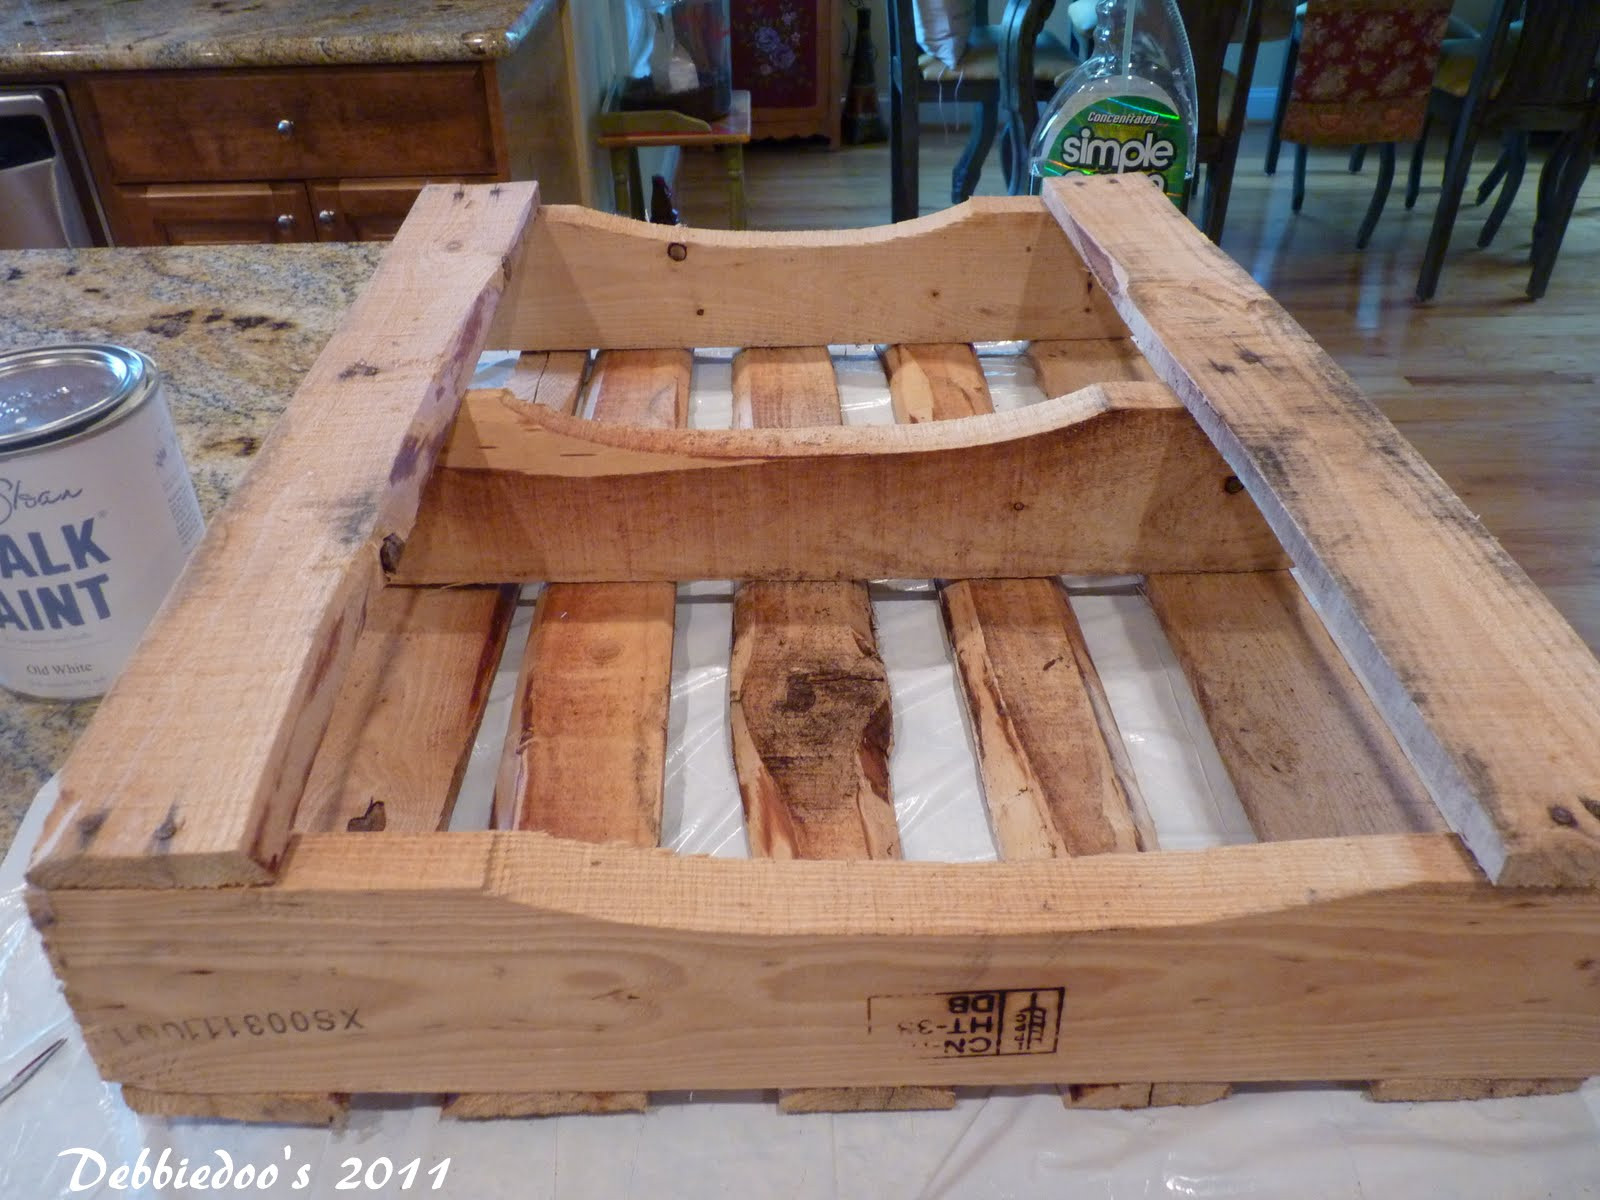 Best ideas about DIY Wood Pallets . Save or Pin Upcycling a wood pallet DIY project FREE Debbiedoo s Now.